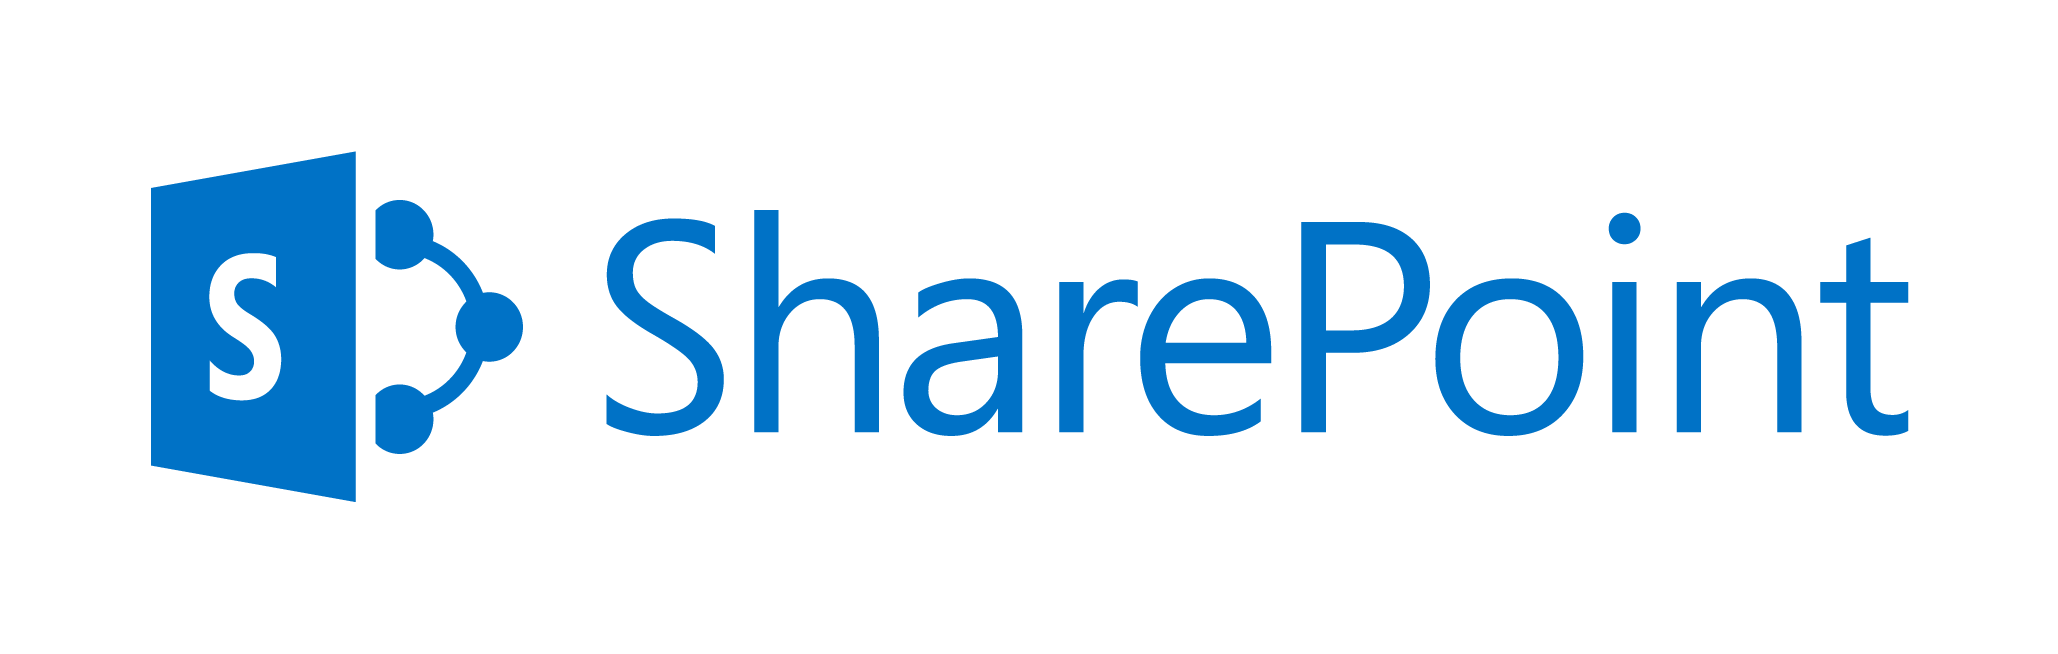 Top 8 Features of SharePoint 2013 - Image 1